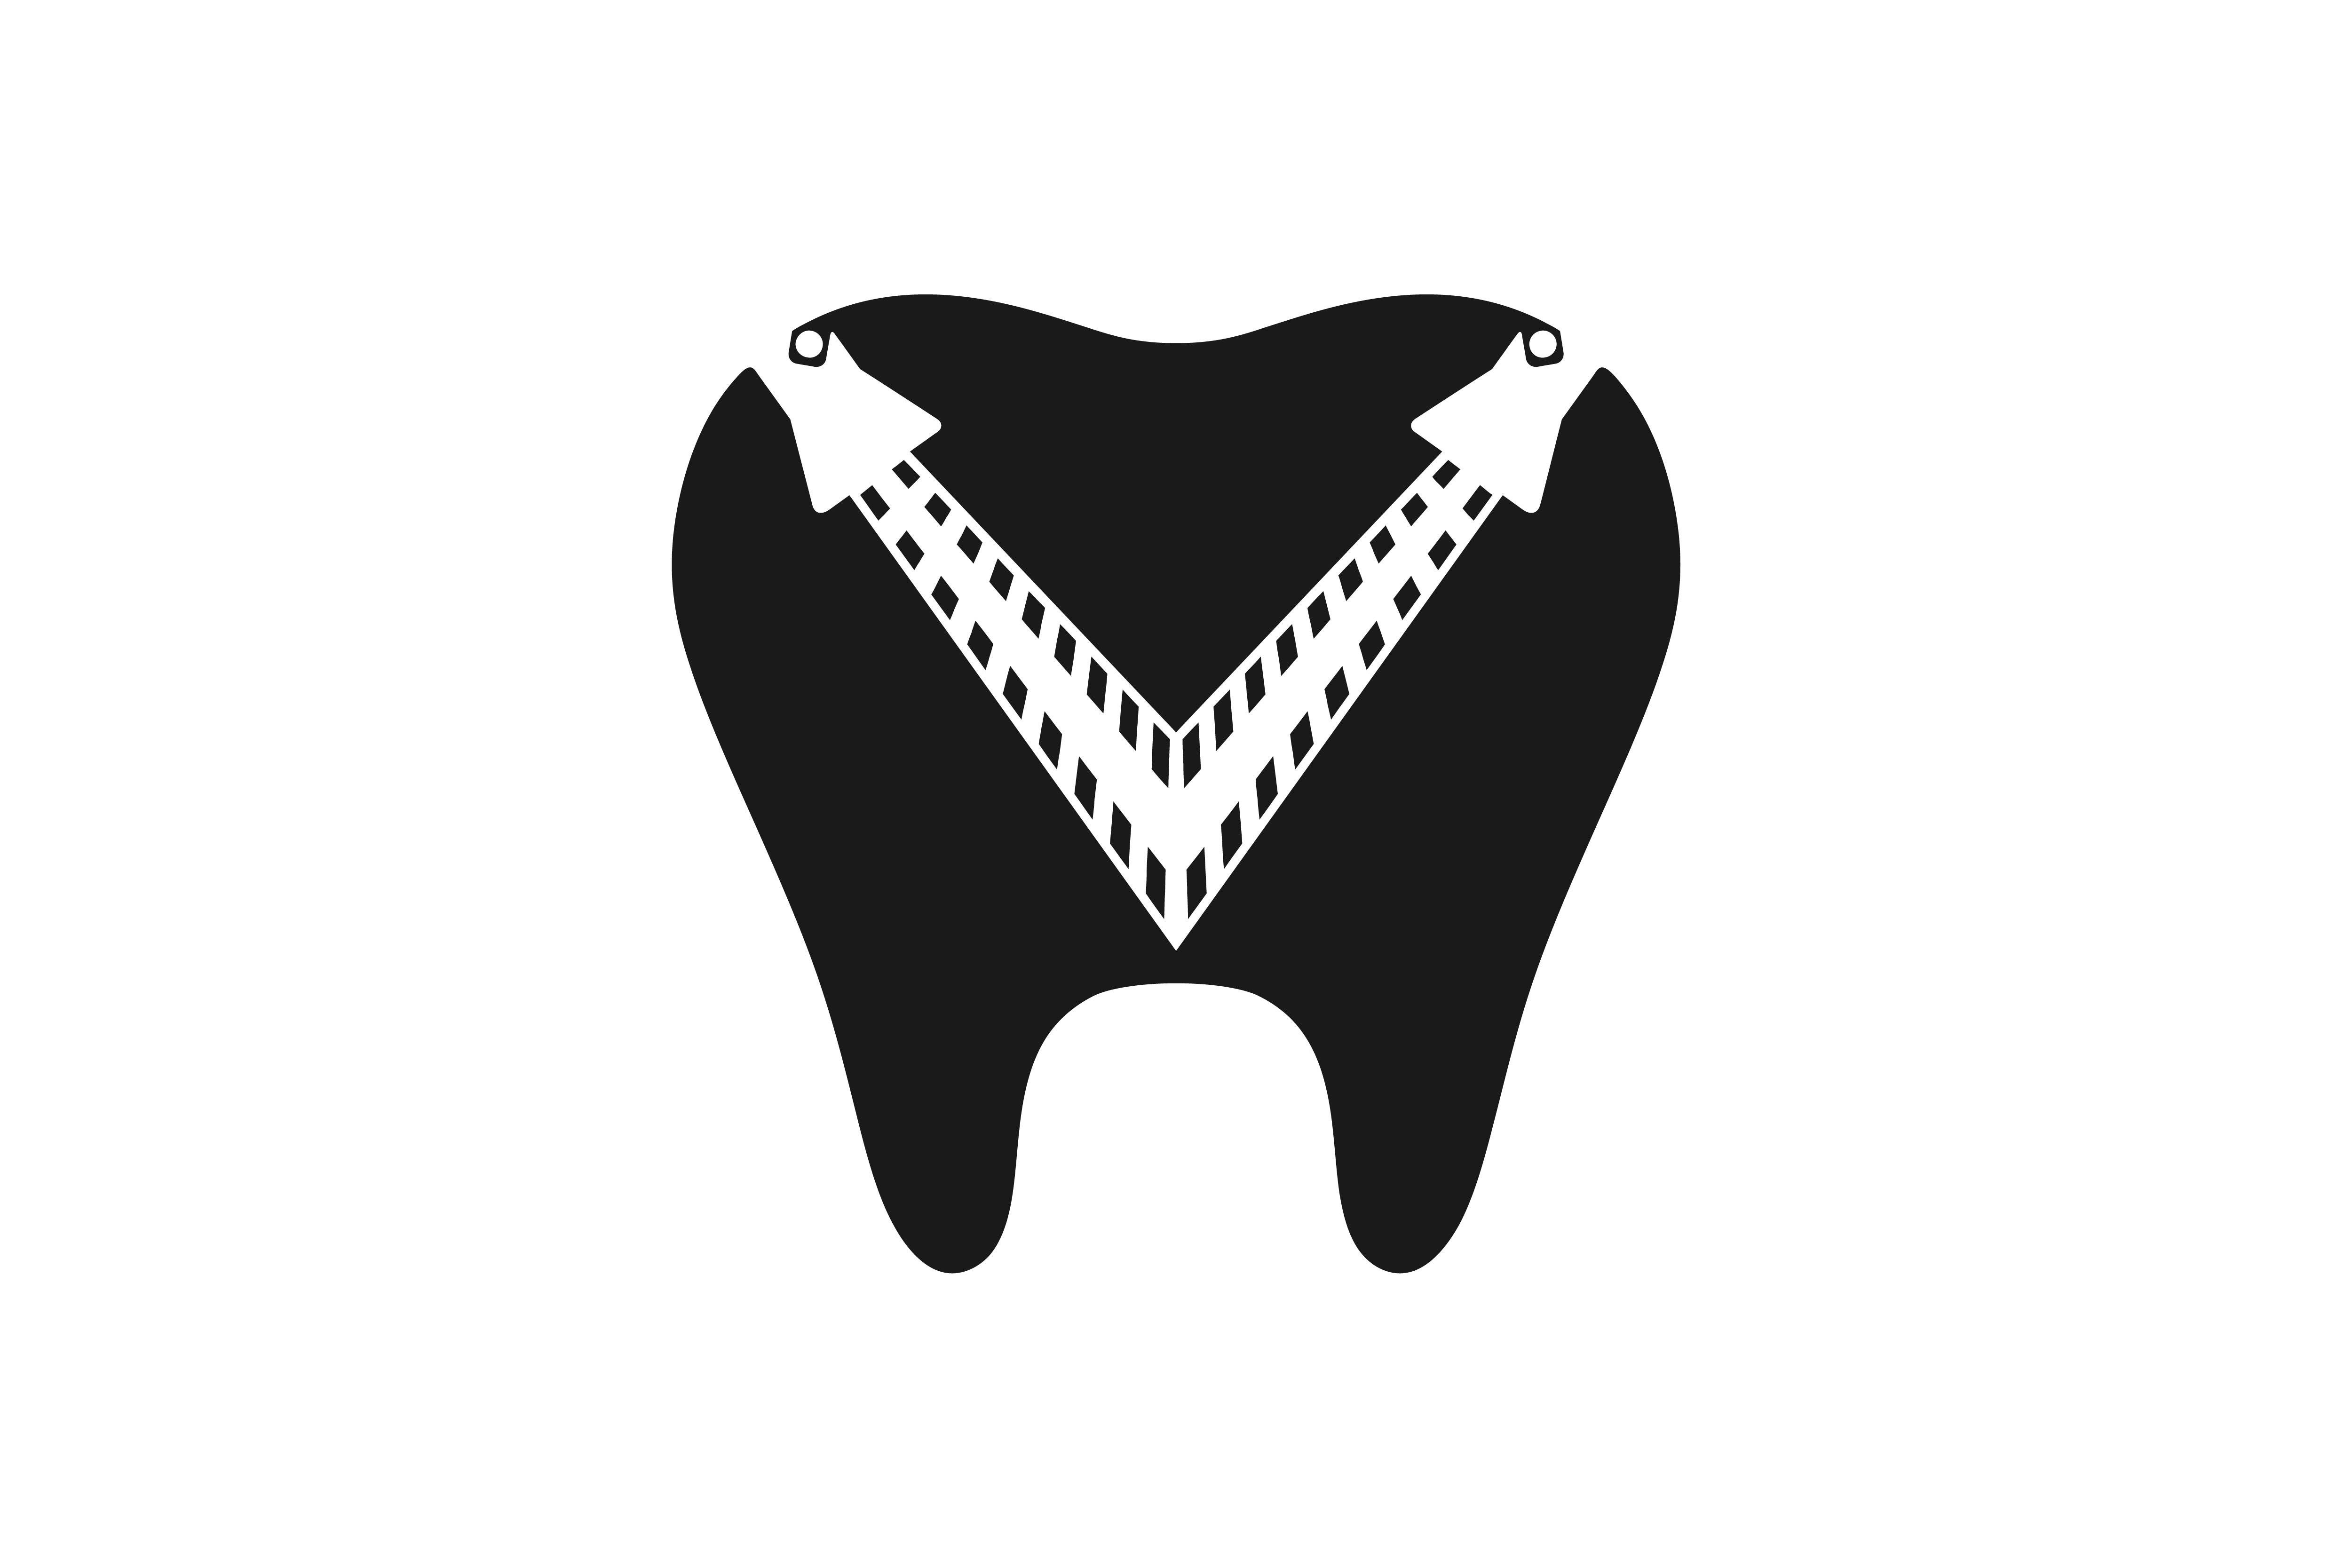 Download Free Dental Logo Design Graphic By Yahyaanasatokillah Creative Fabrica for Cricut Explore, Silhouette and other cutting machines.